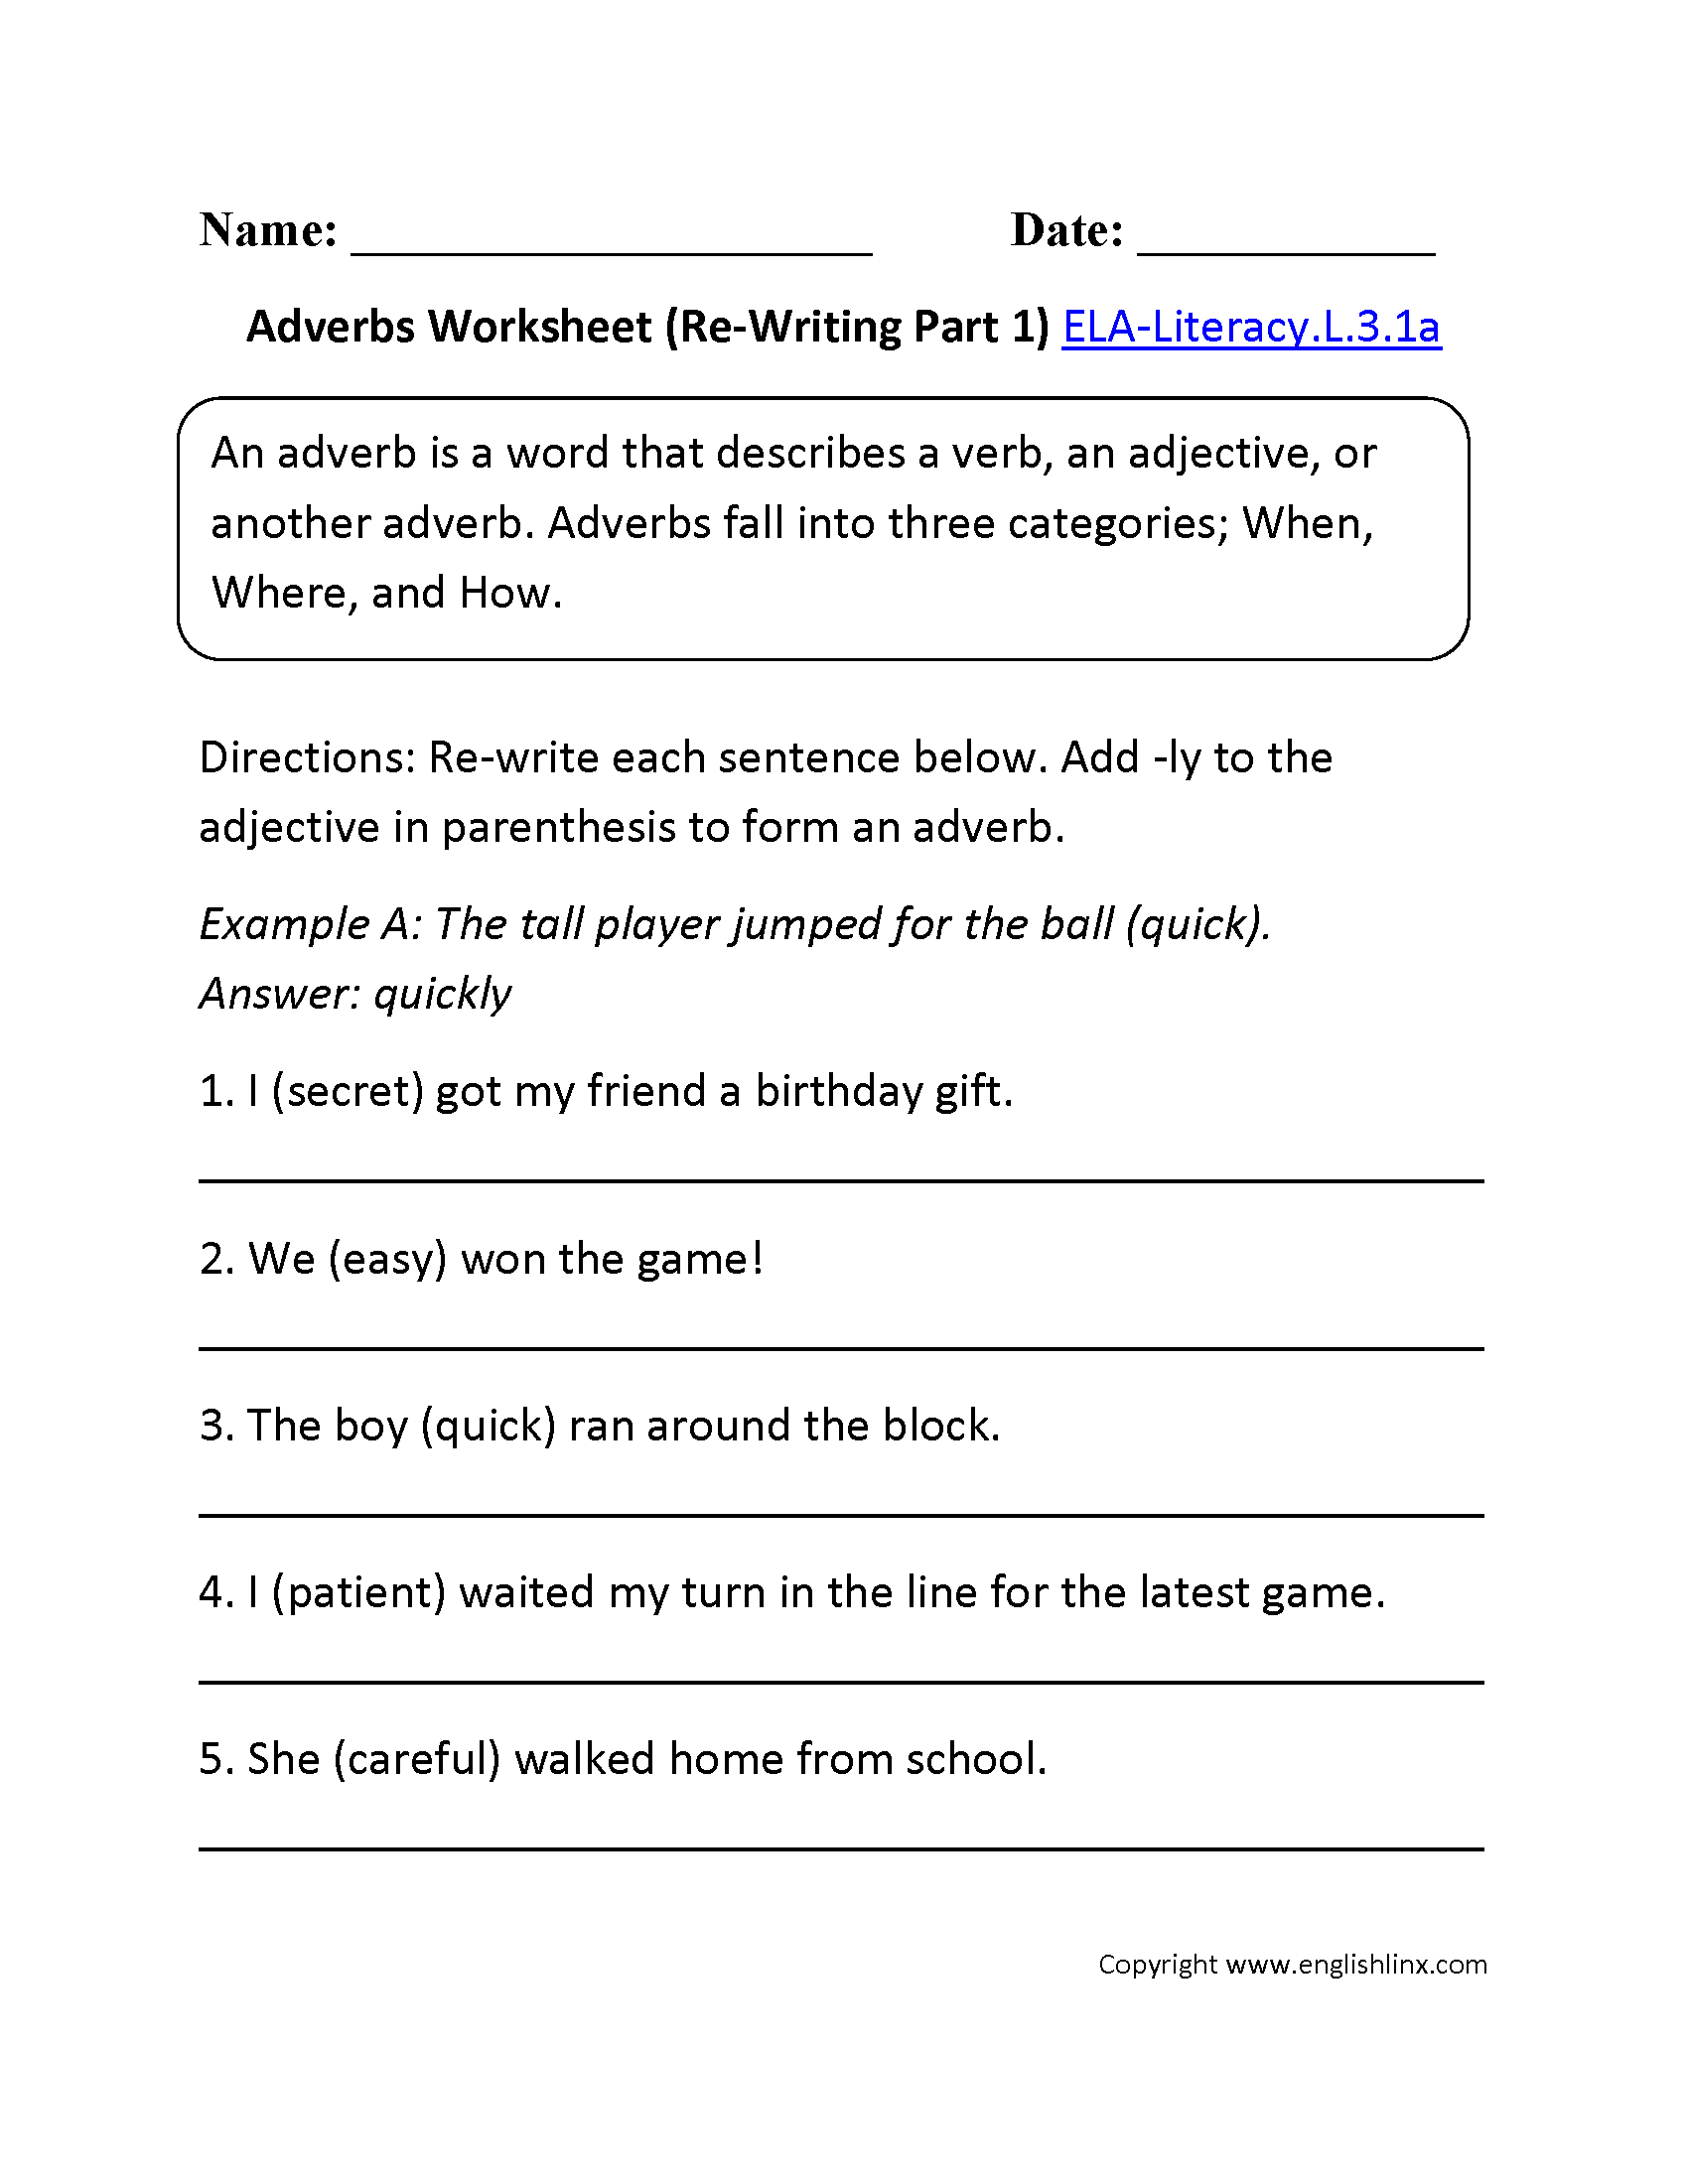 worksheet Adverbs Worksheet Year 2 adverbs worksheet 2 l 3 1 pinterest 1